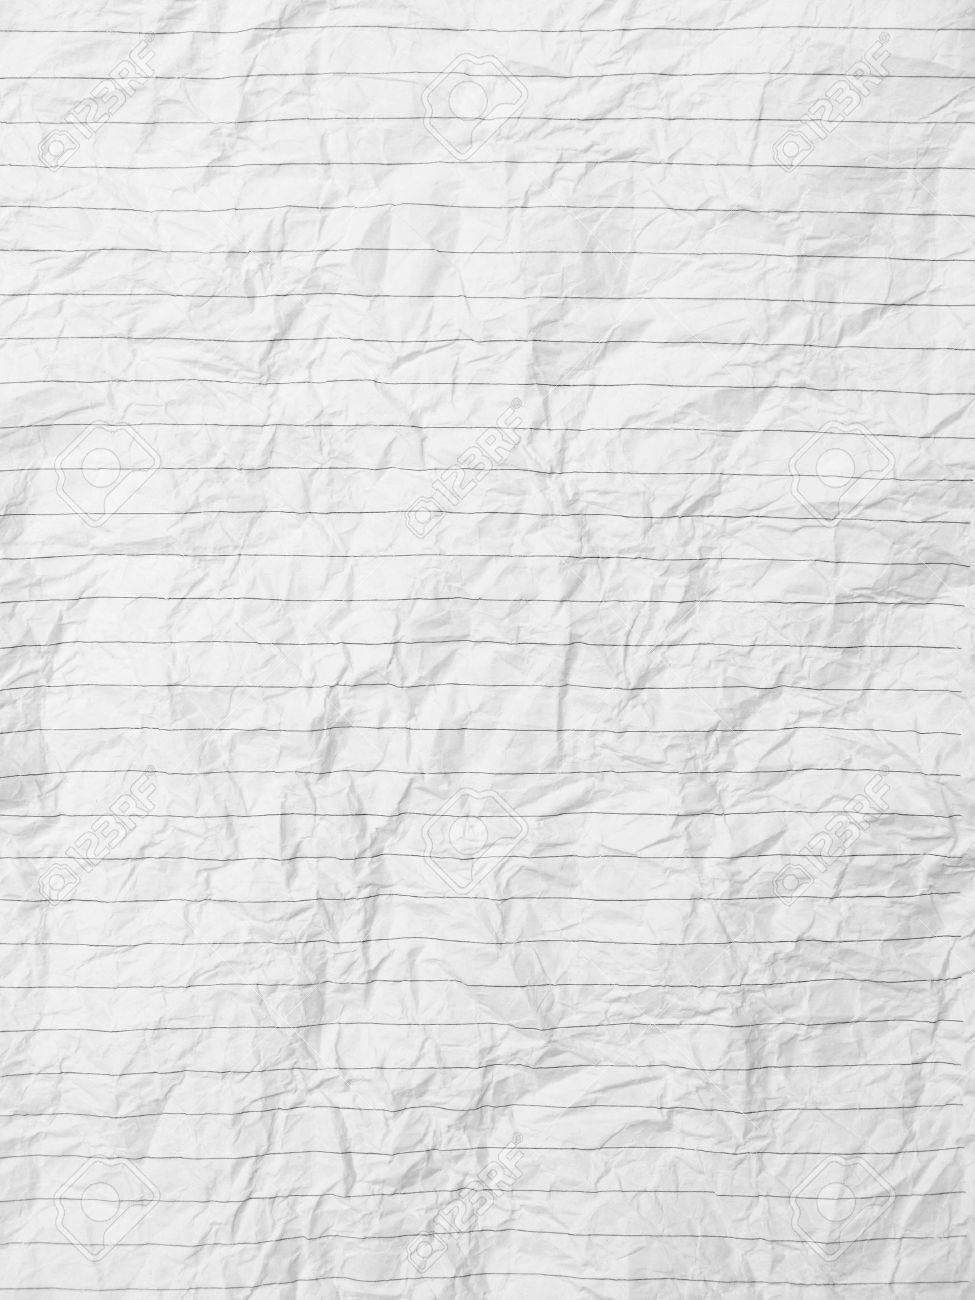 Crumpled Sheet Of Lined Paper Or Notebook Stock Photo